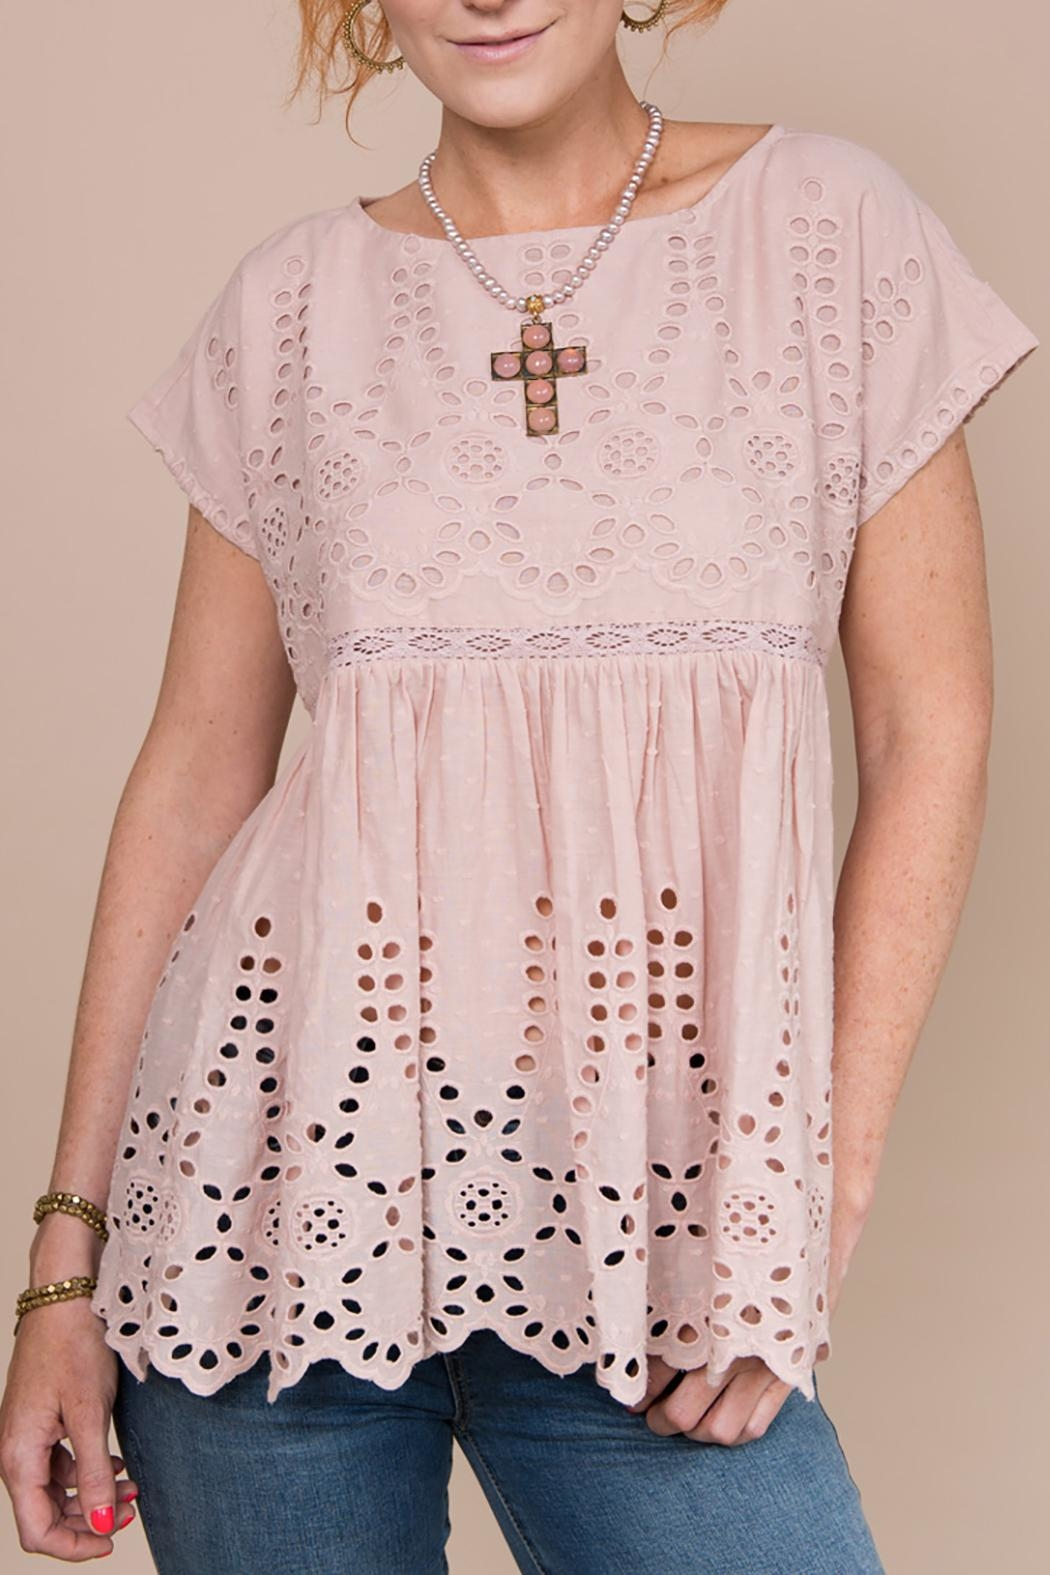 Ivy Jane Eyelet Baby-Doll Top - Front Cropped Image